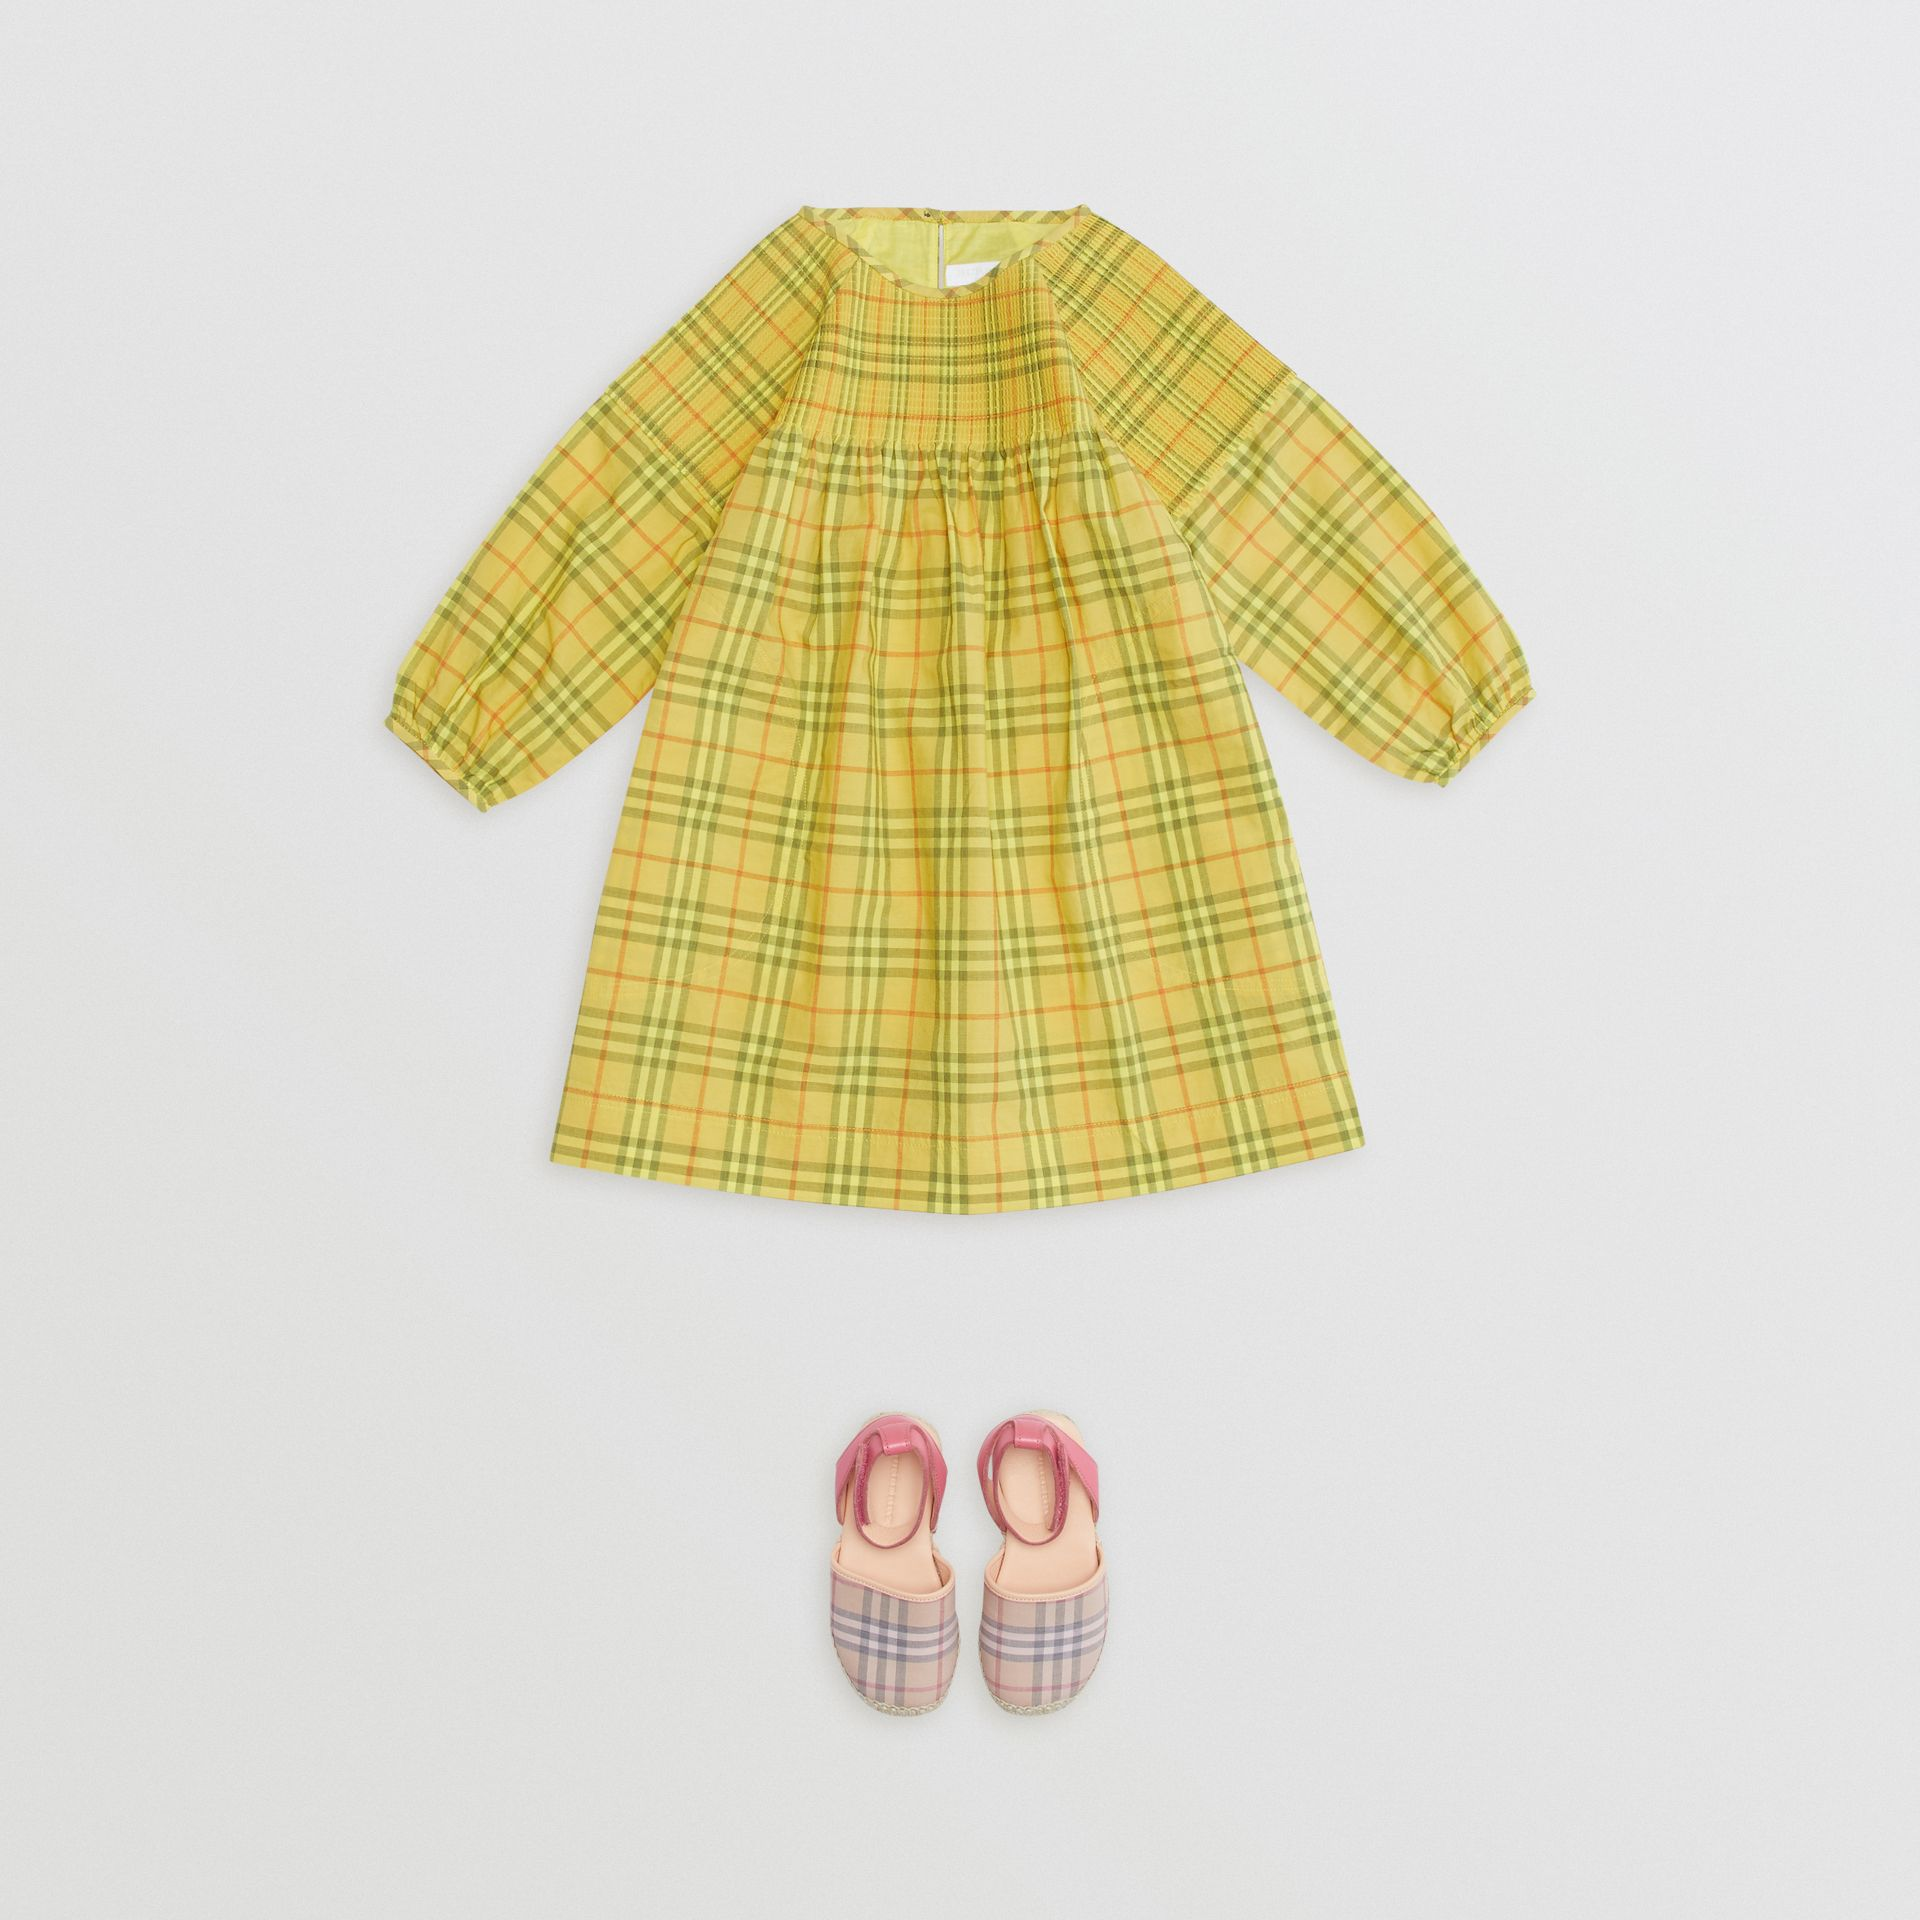 Robe en coton à motif check et smocks (Jaune Agrume) - Fille | Burberry - photo de la galerie 2